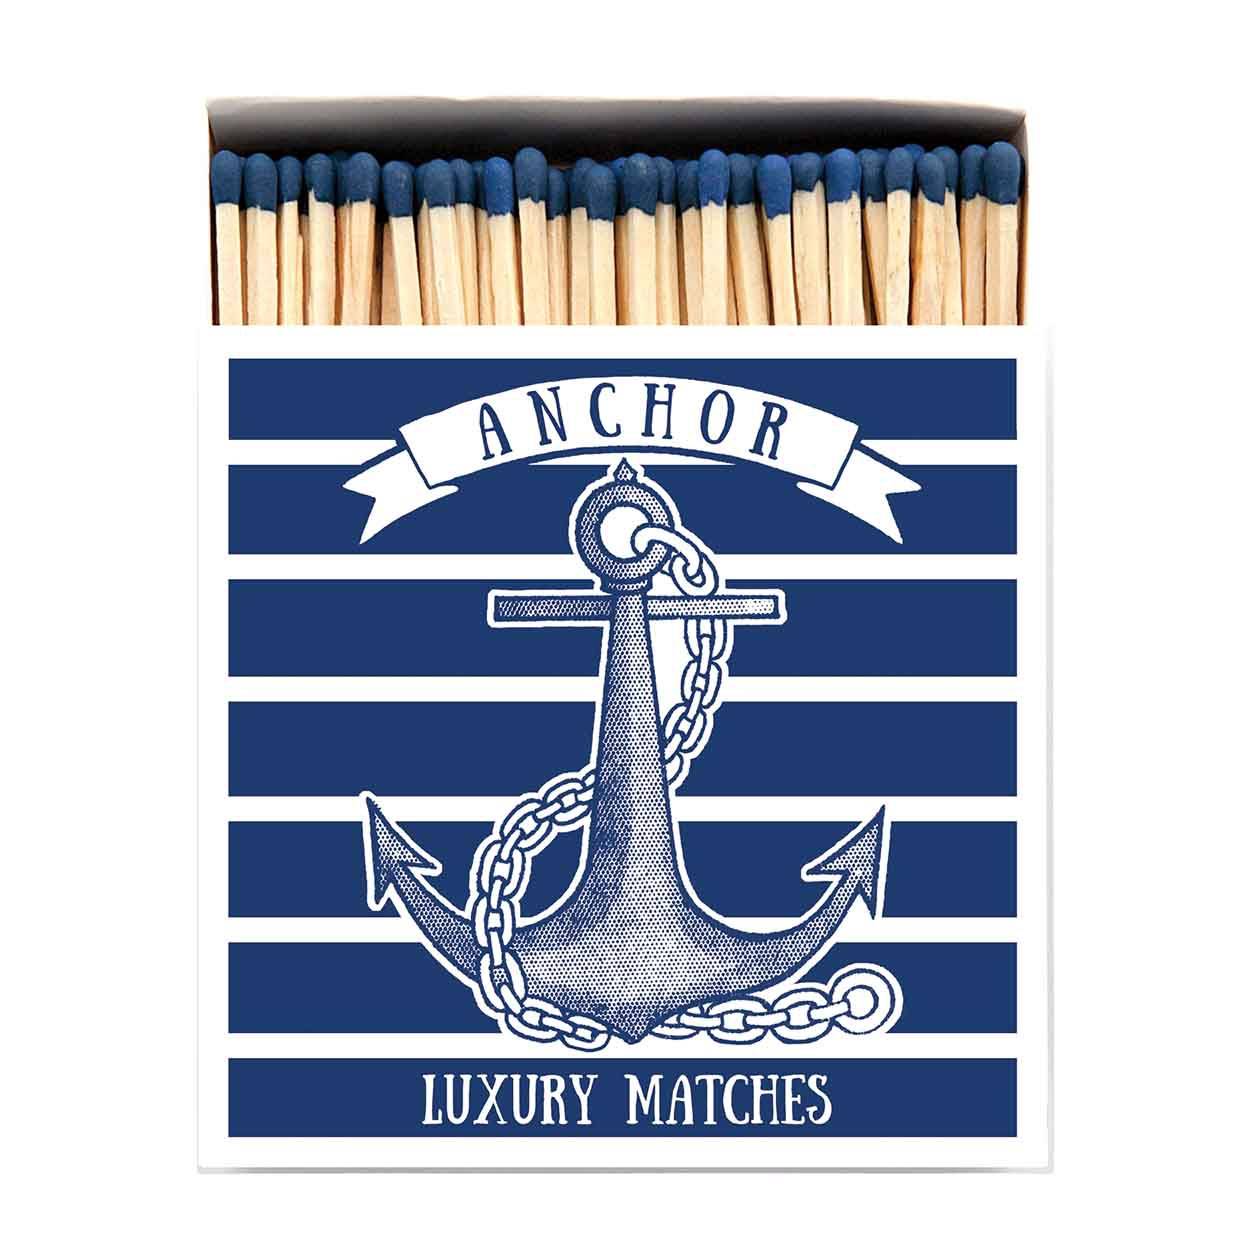 Anchor Matches